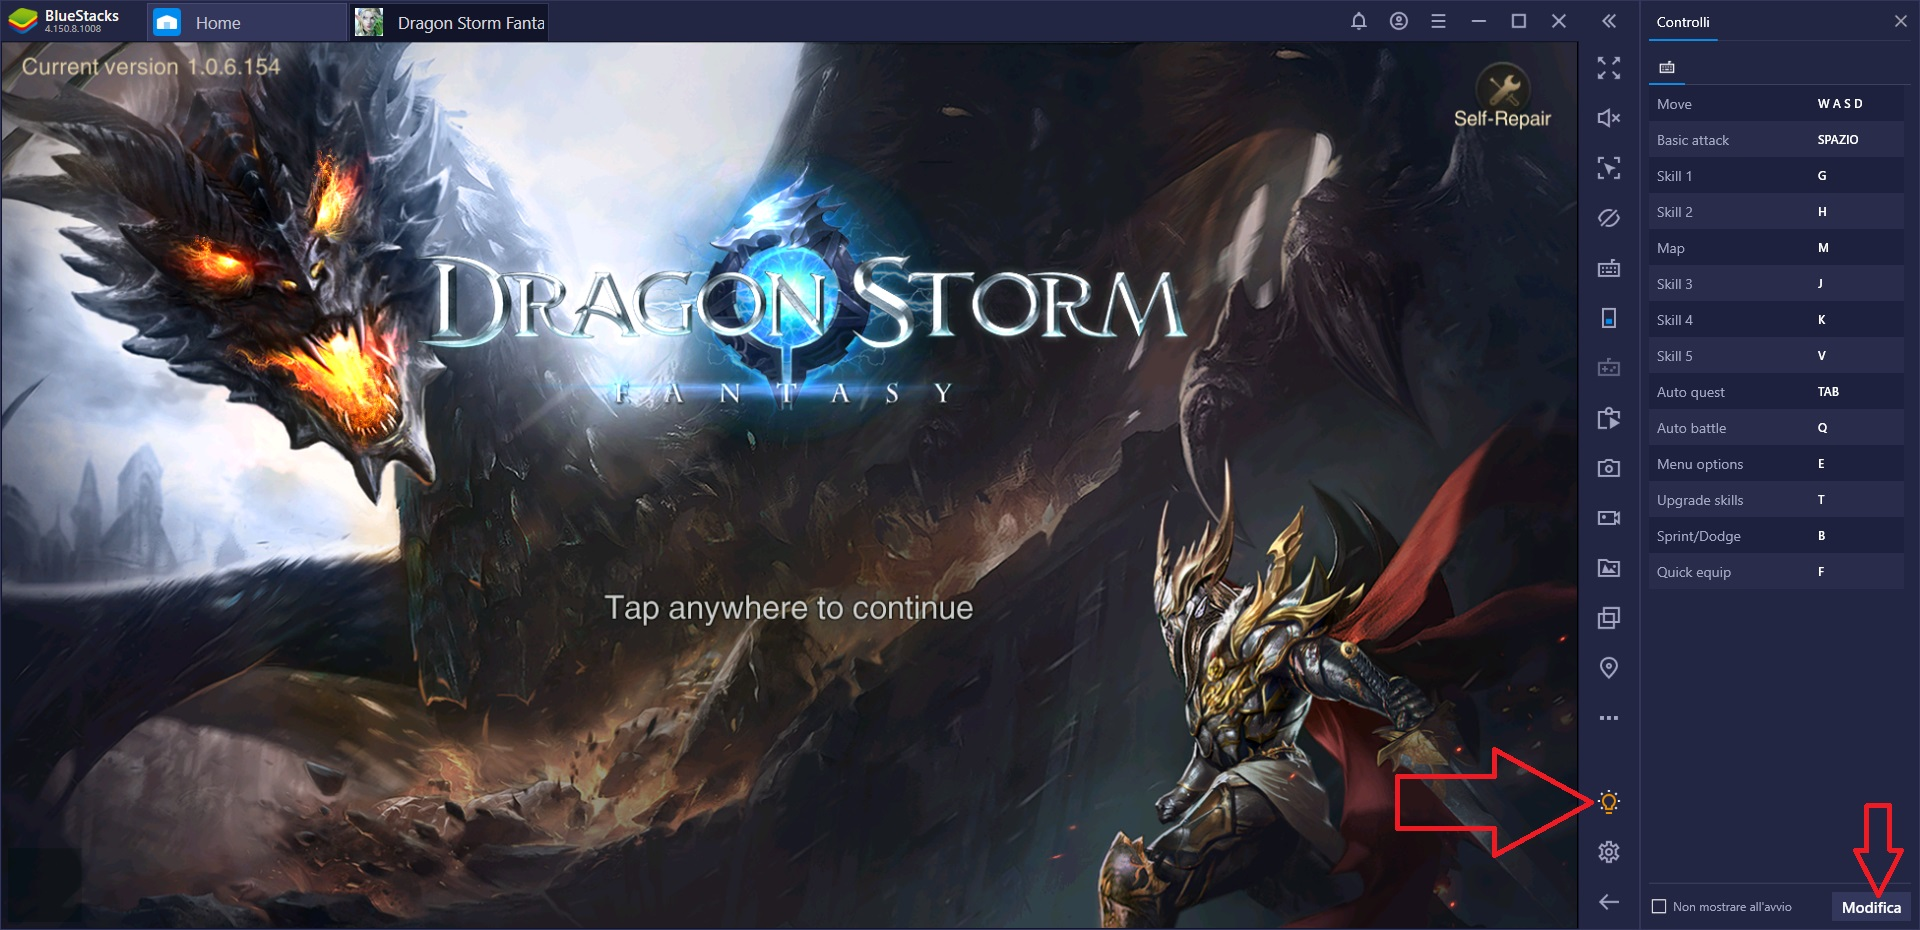 Dragon Storm Fantasy su PC – Risveglia lo spirito del drago con Bluestacks